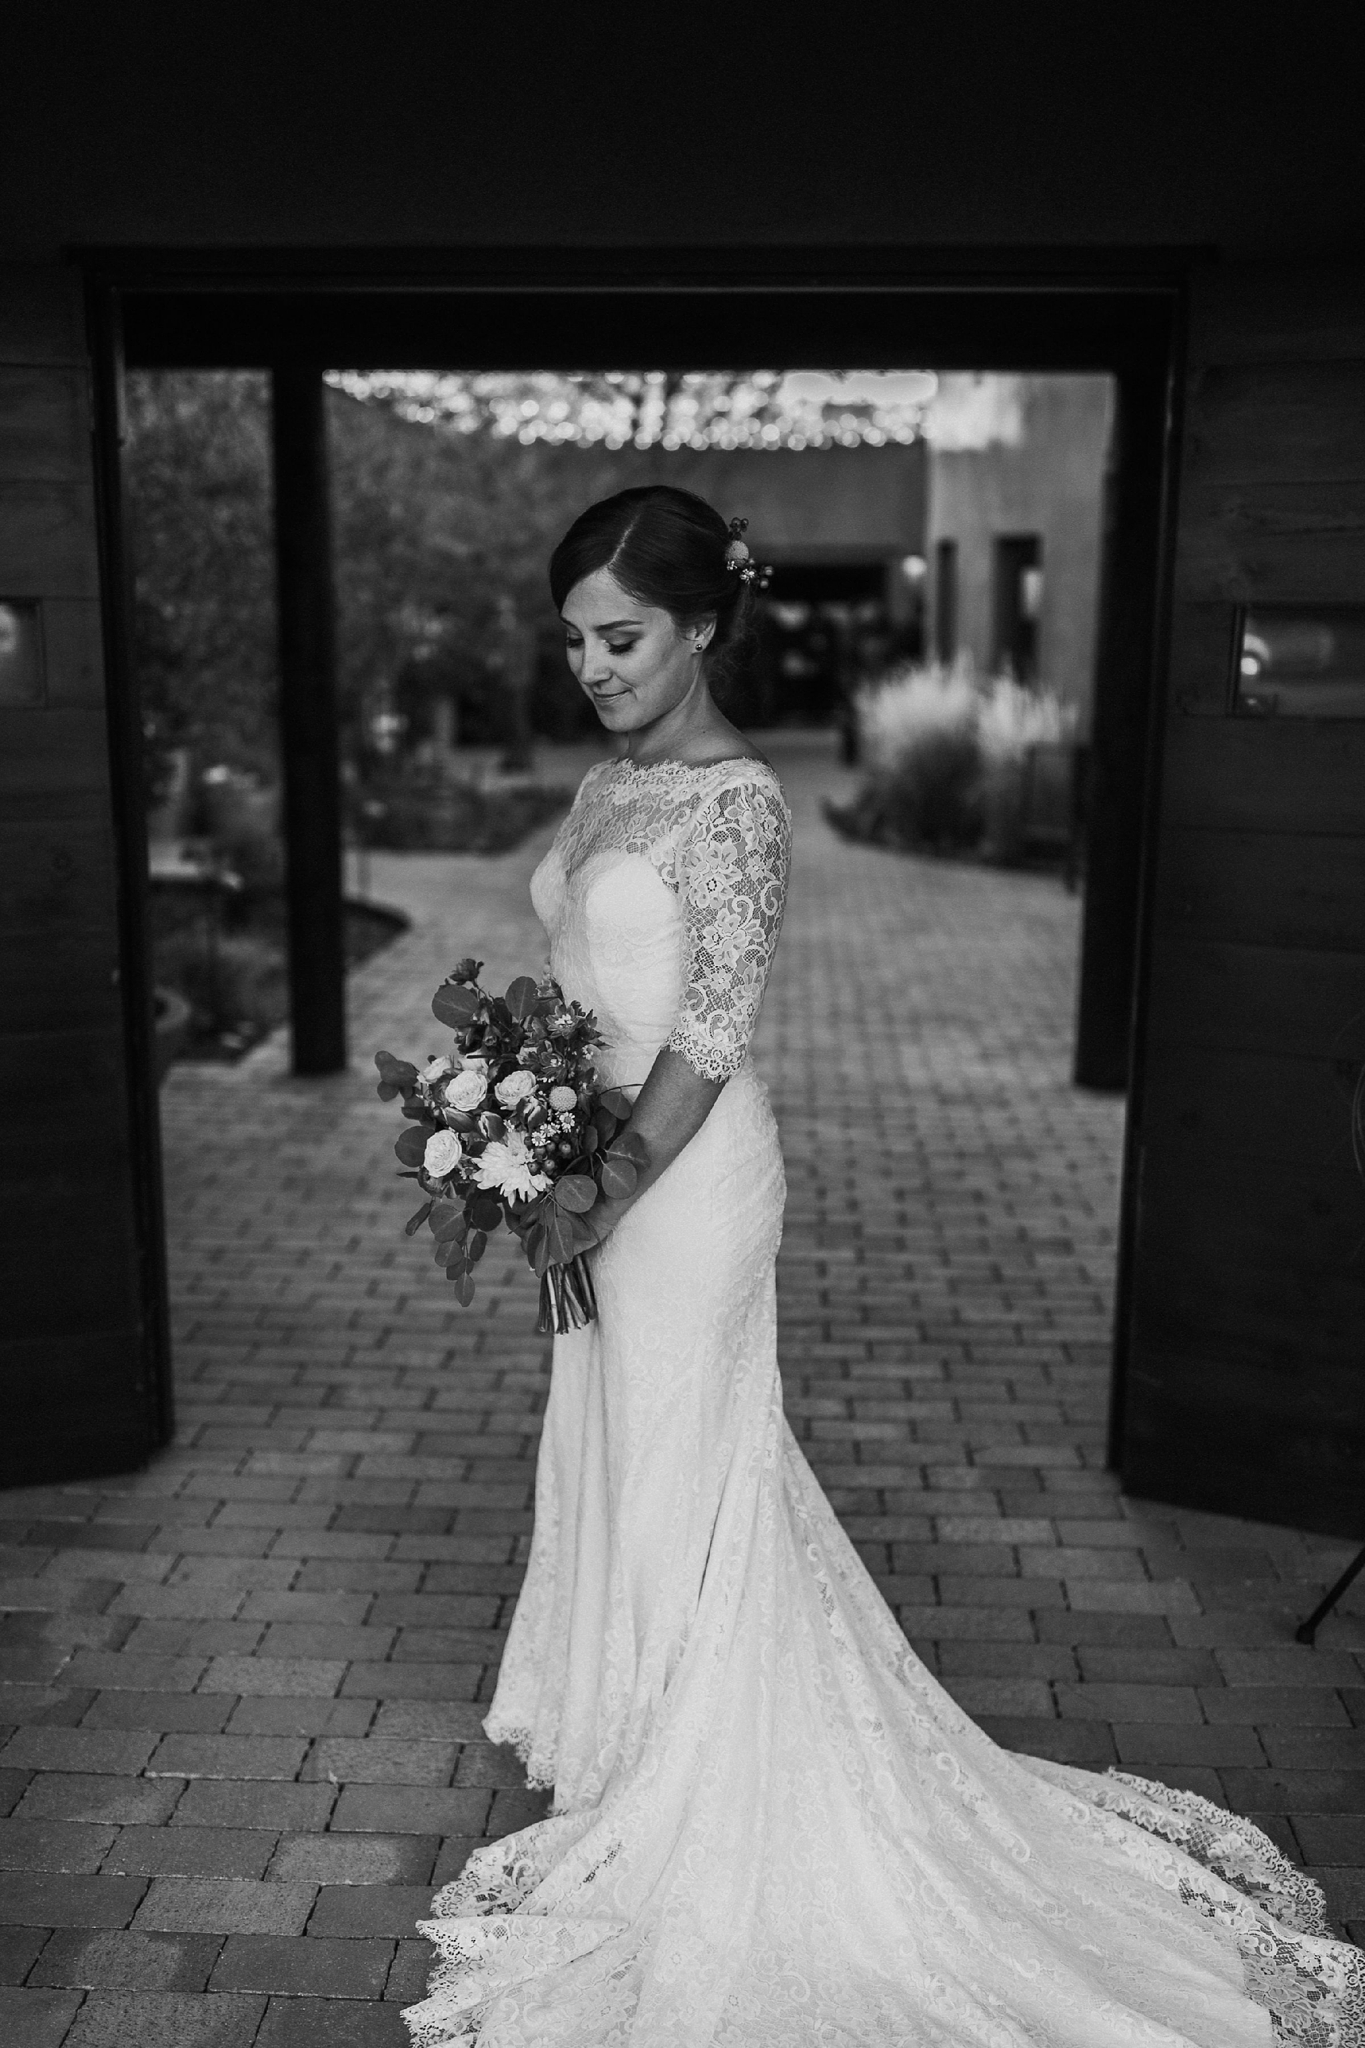 Alicia+lucia+photography+-+albuquerque+wedding+photographer+-+santa+fe+wedding+photography+-+new+mexico+wedding+photographer+-+albuquerque+wedding+-+sarabande+bed+breakfast+-+bed+and+breakfast+wedding_0071.jpg